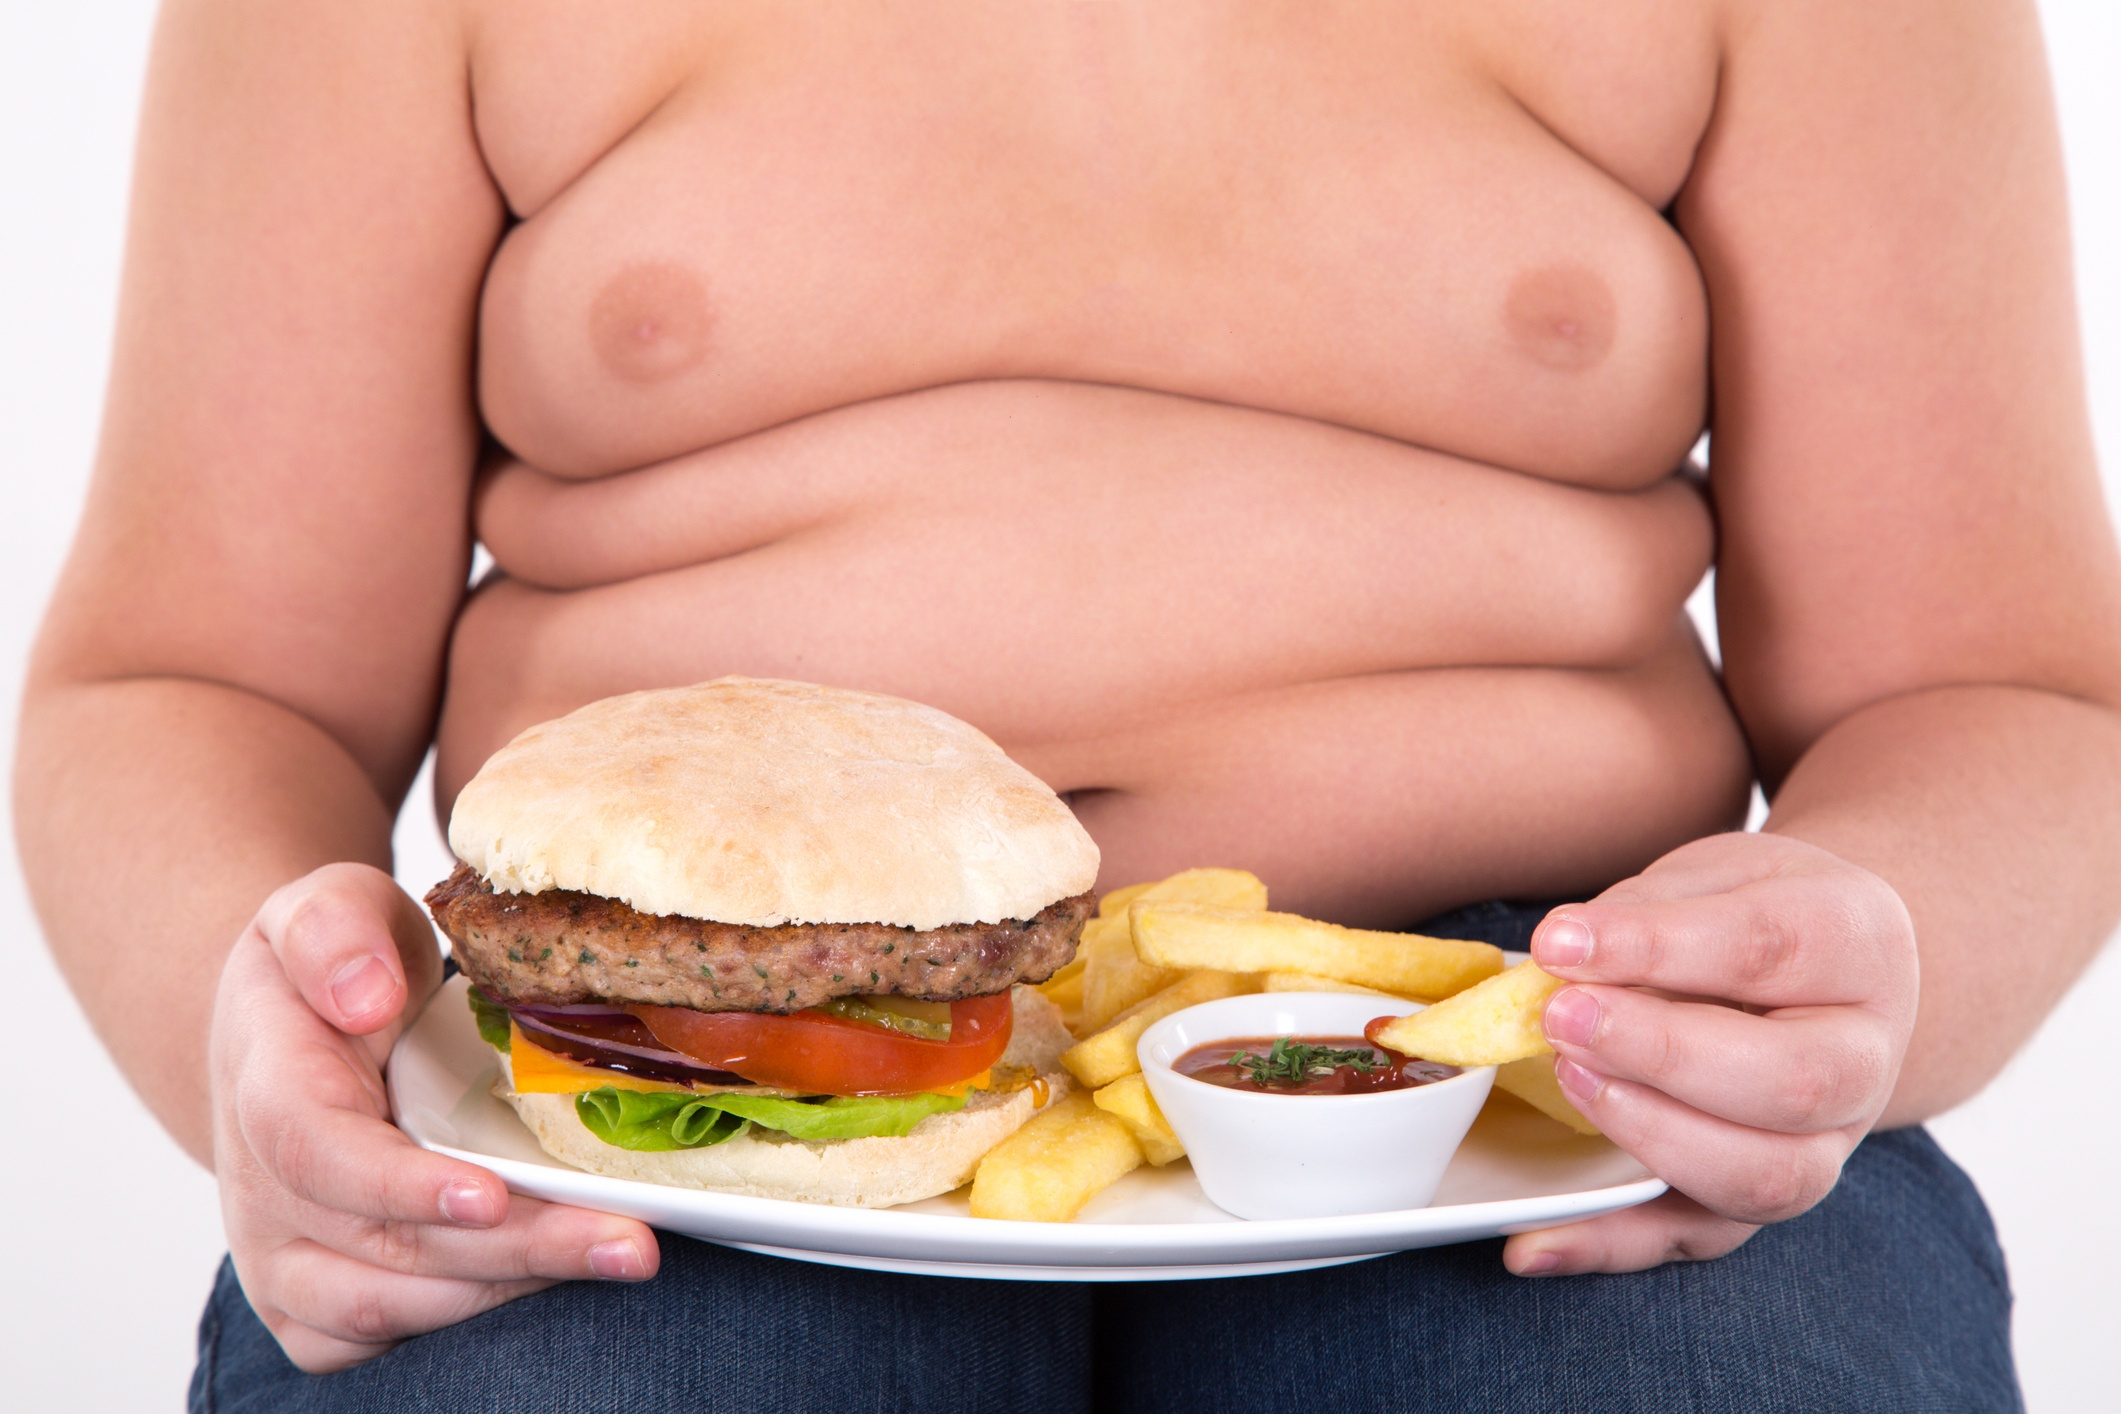 Obese child with hamburger and fries